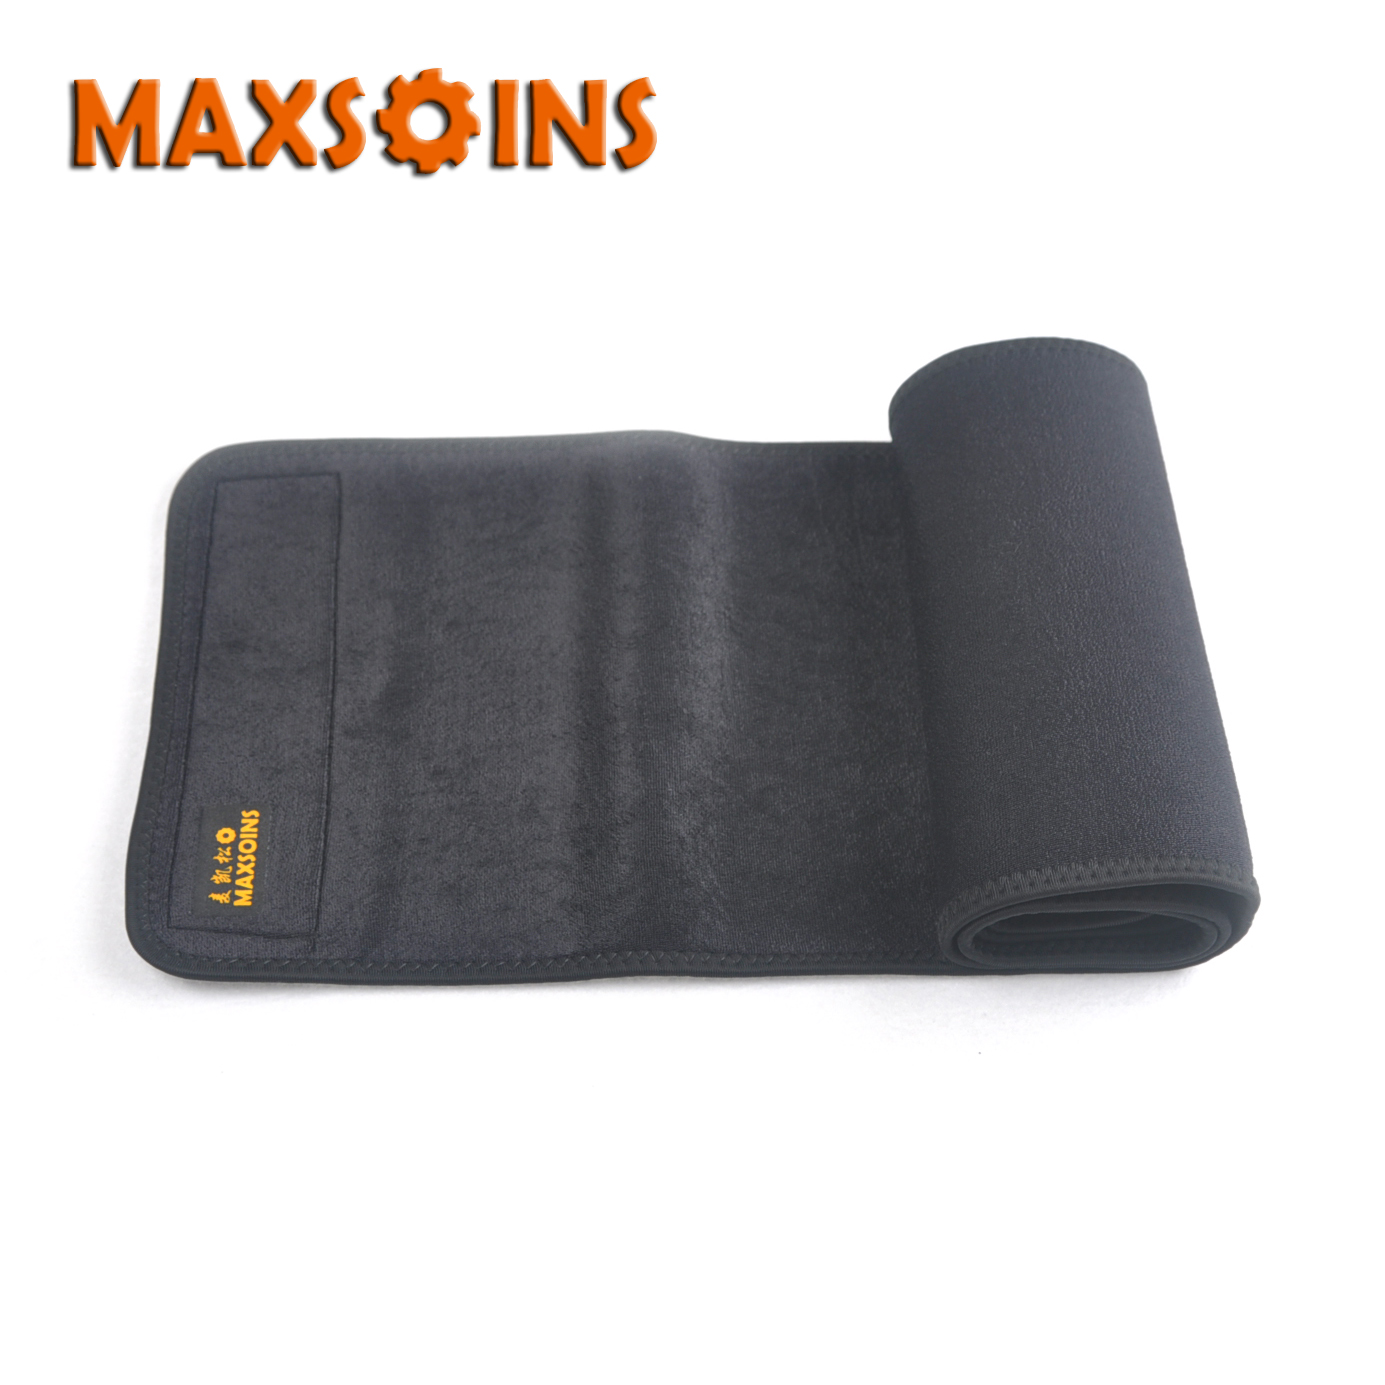 Maxsoins maikai song sports compression anti pressurized thermal protection belt lumbar support fixed waist waist closure